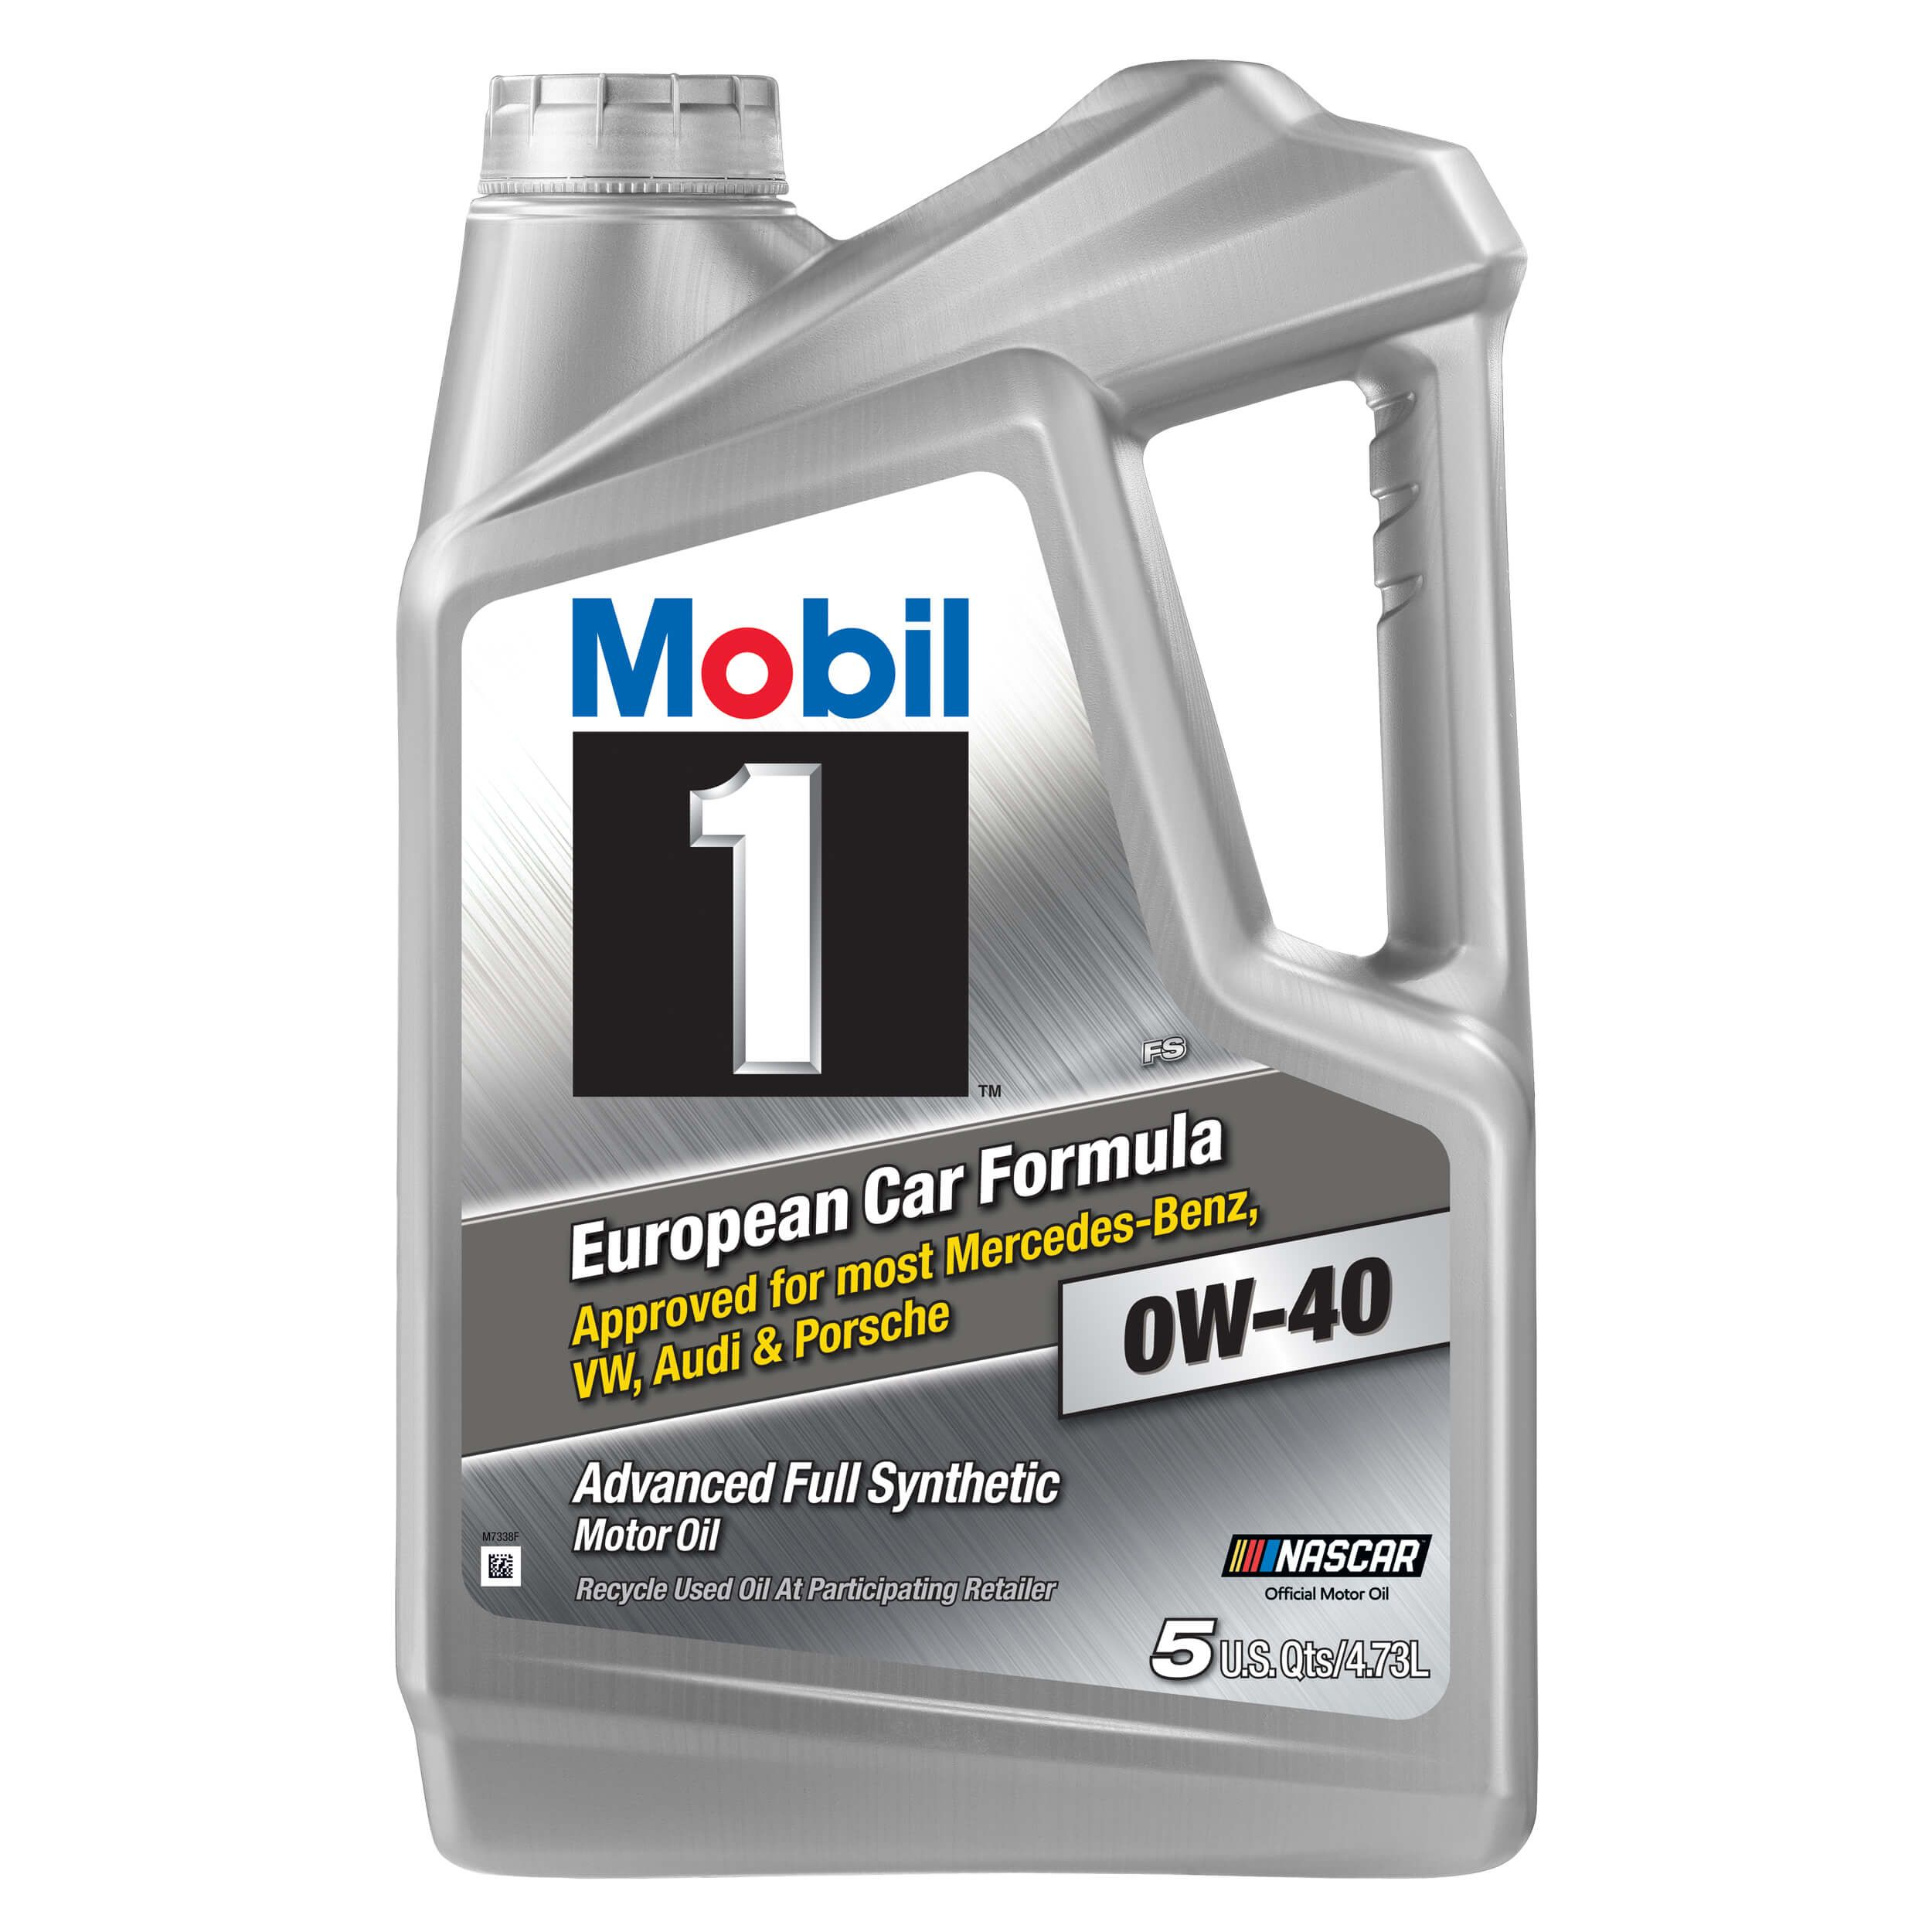 Free 2 Day Shipping On Qualified Orders Over 35 Buy Mobil 1 Advanced Full Synthetic Motor Oil 0w 40 5 Qt At Walmart Com In 2020 Motor Oil Car Engine Engineering